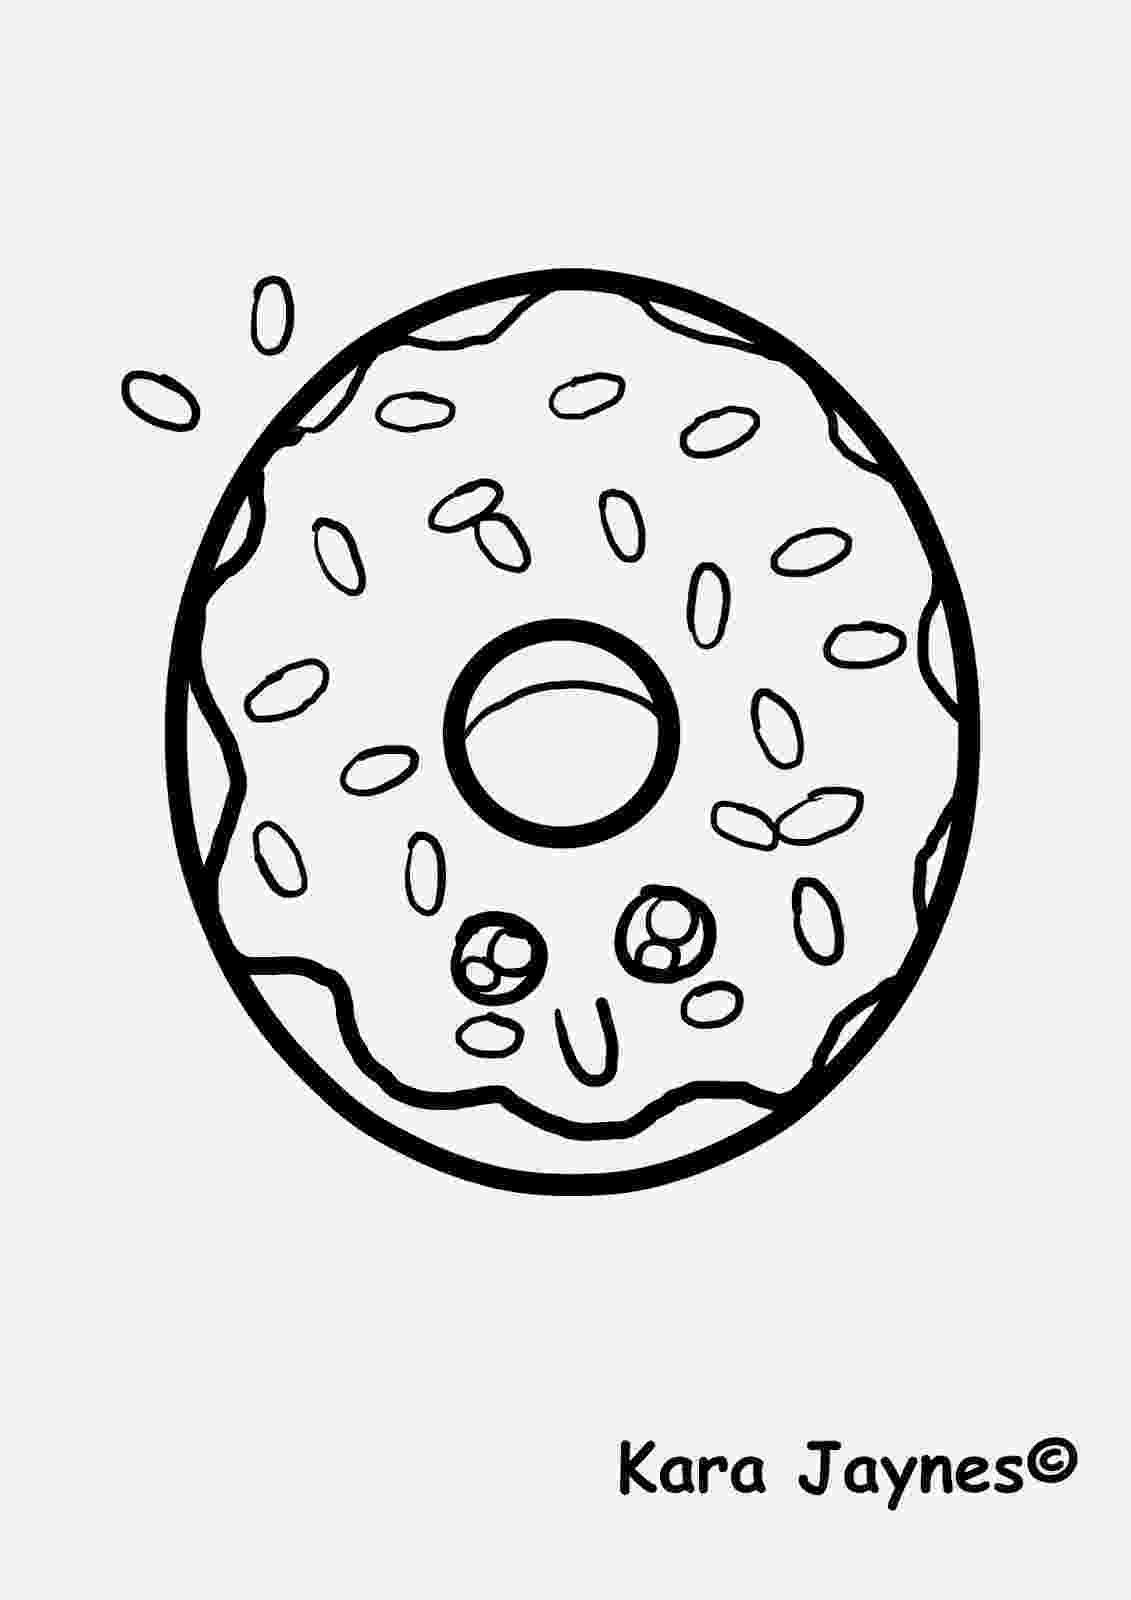 colouring food pictures free printable food coloring pages for kids food colouring pictures 1 1